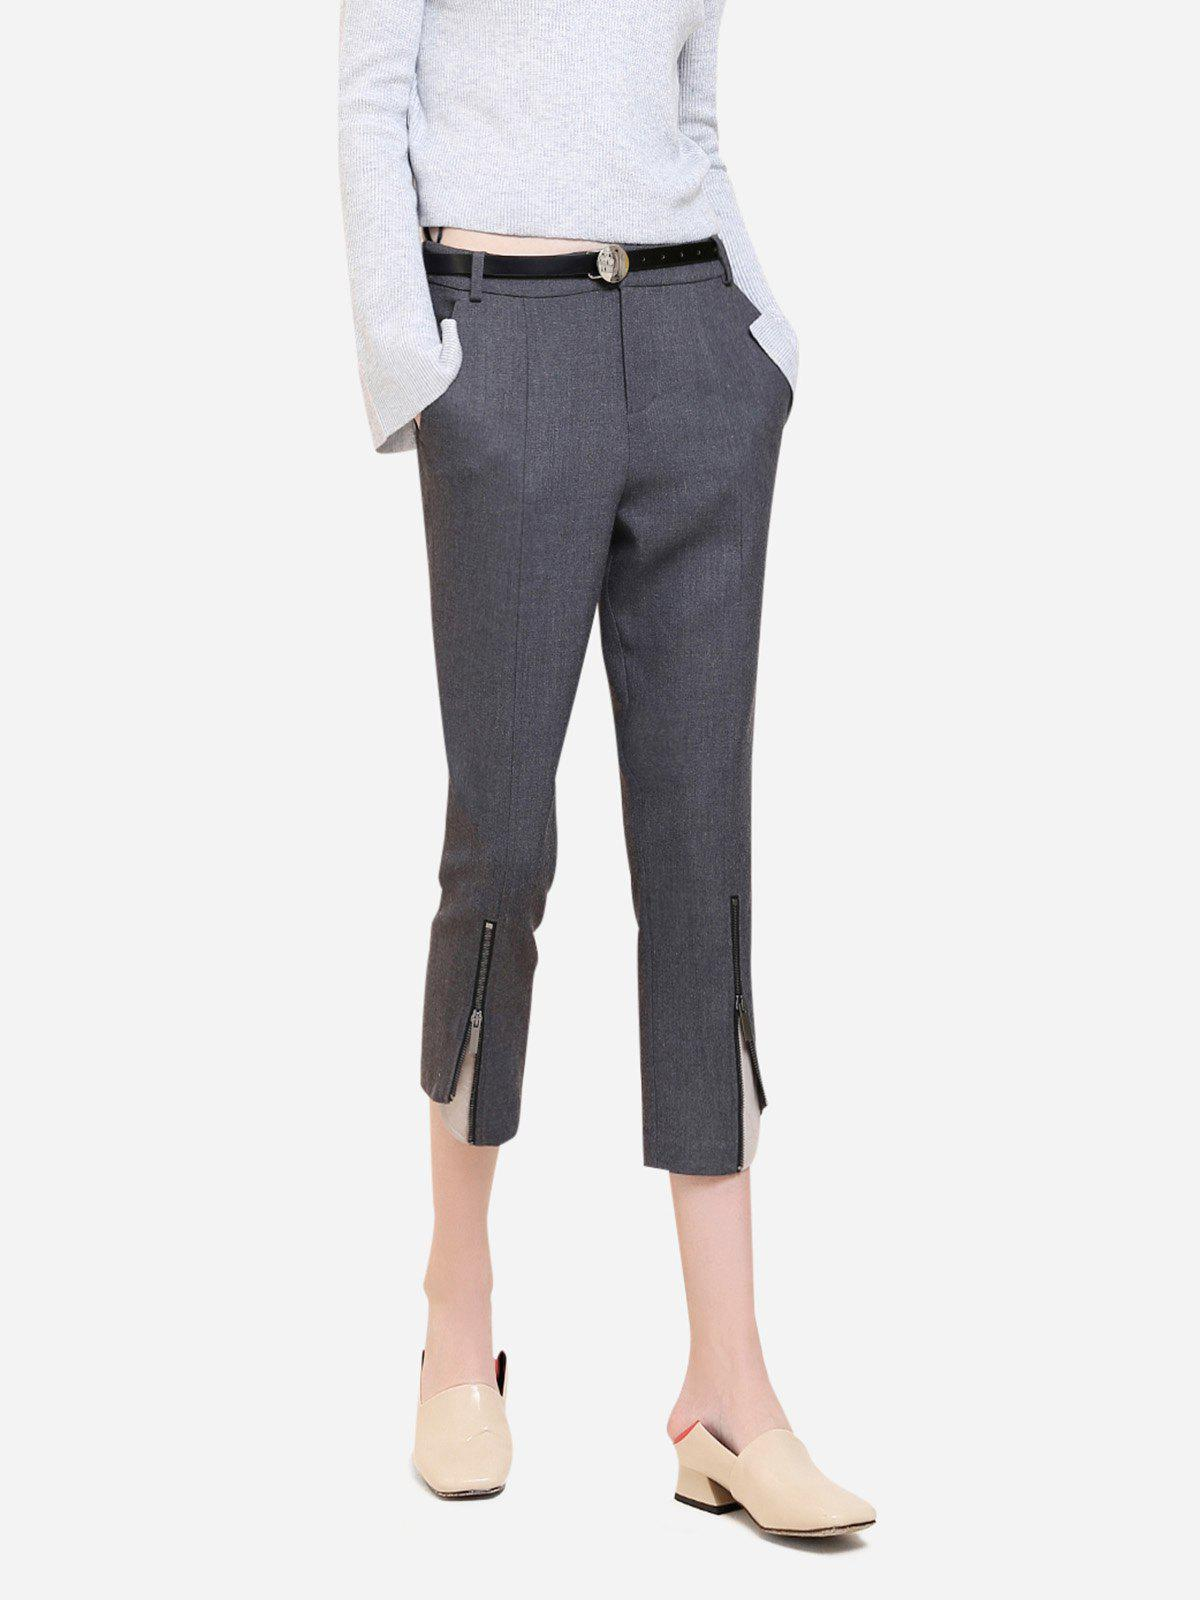 ZAN.STYLE Side Pocket Cropped Pants - GRAY 3XL